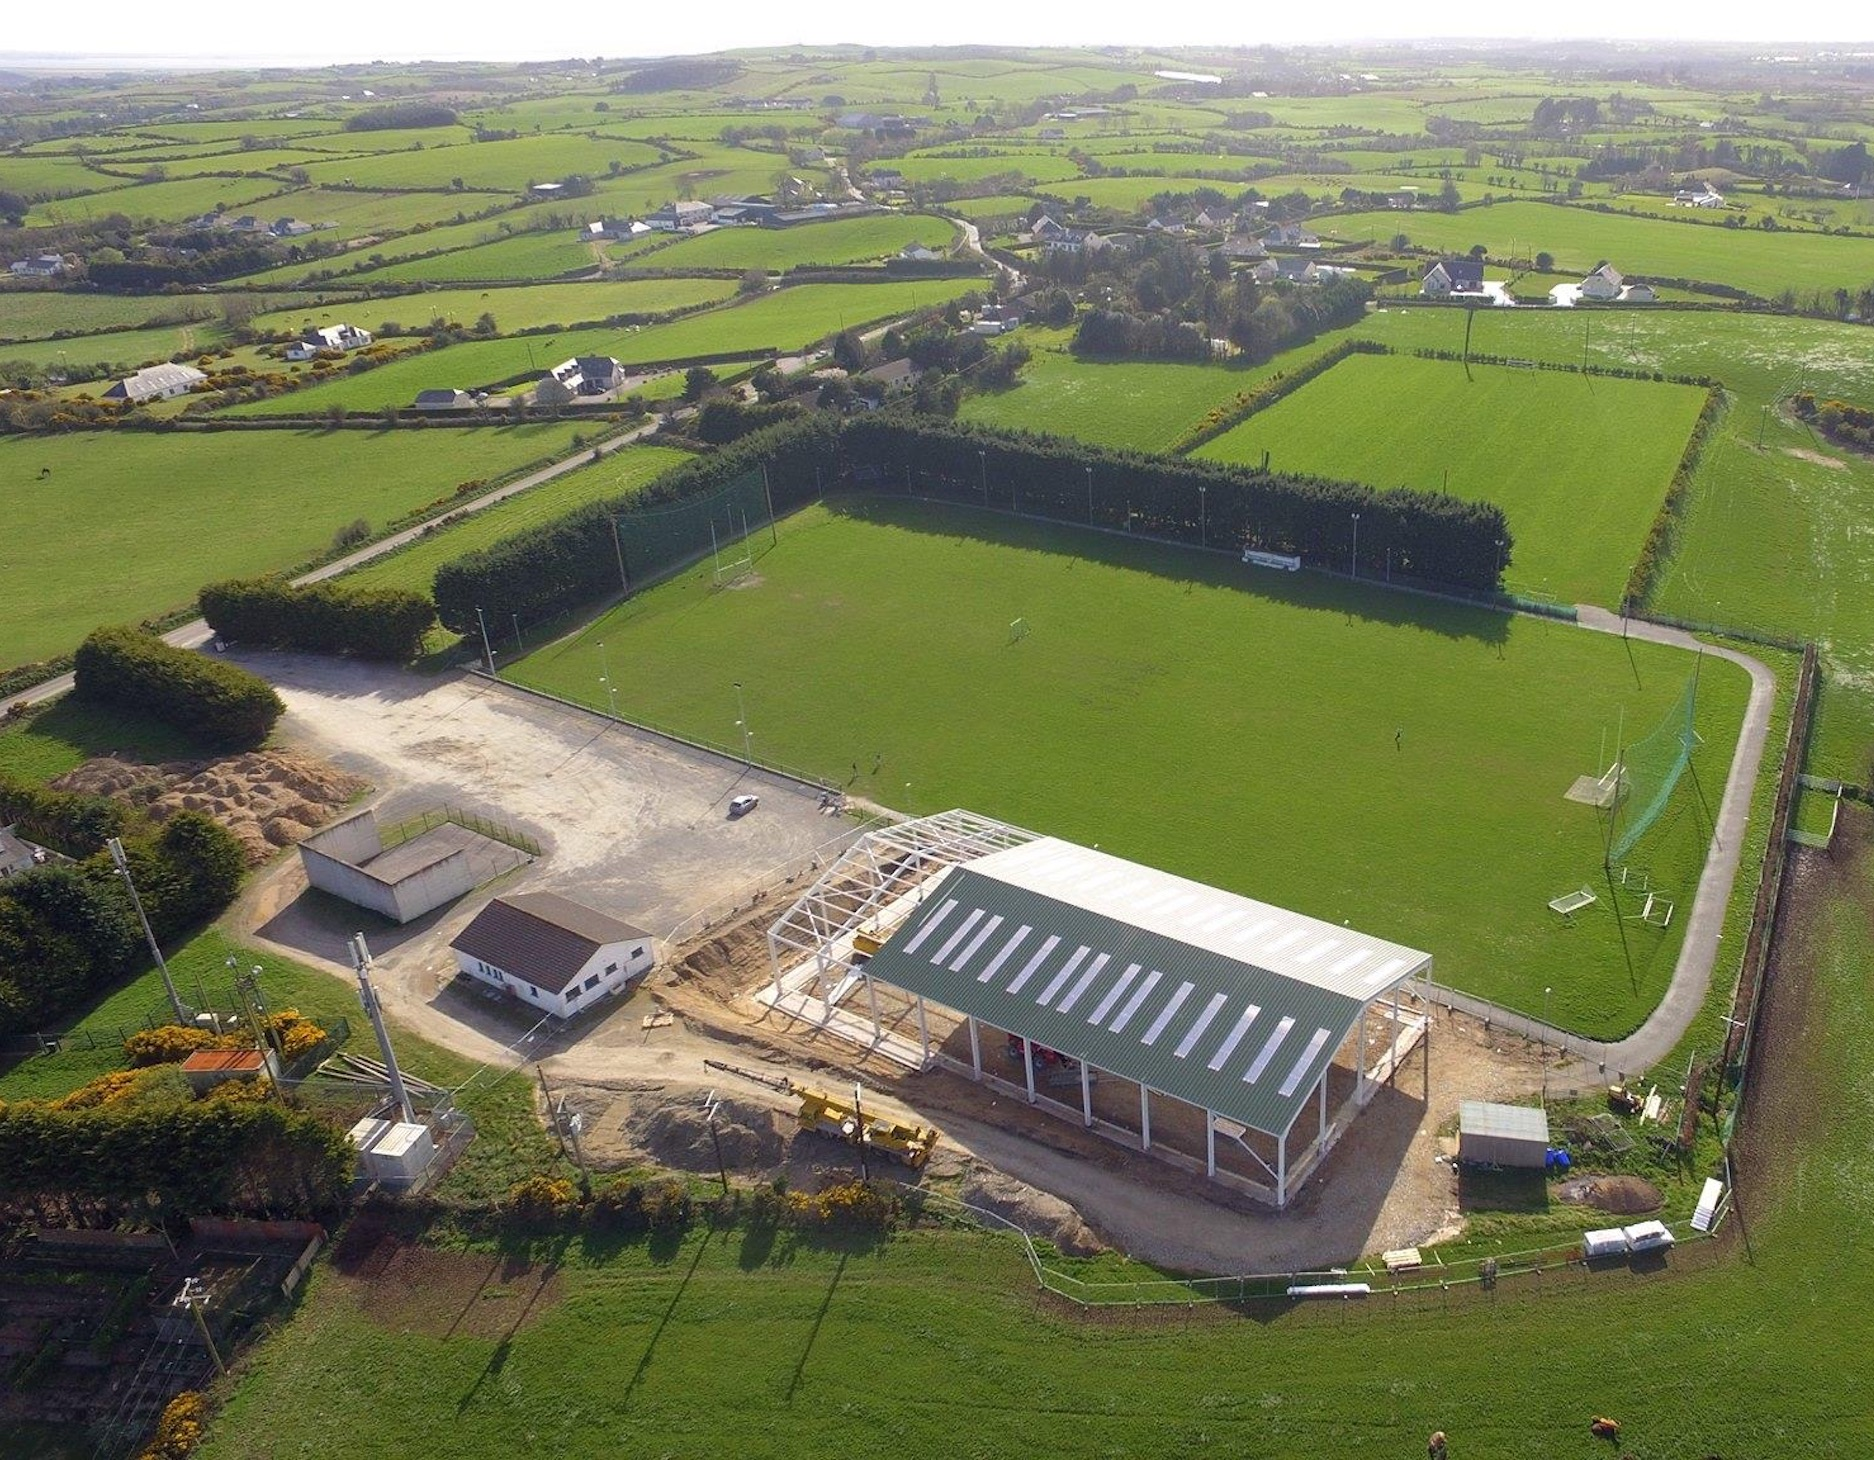 http://blackwater.gaa.ie/wp-content/uploads/2020/01/Pitch-aerial-shot-for-front-page.jpg